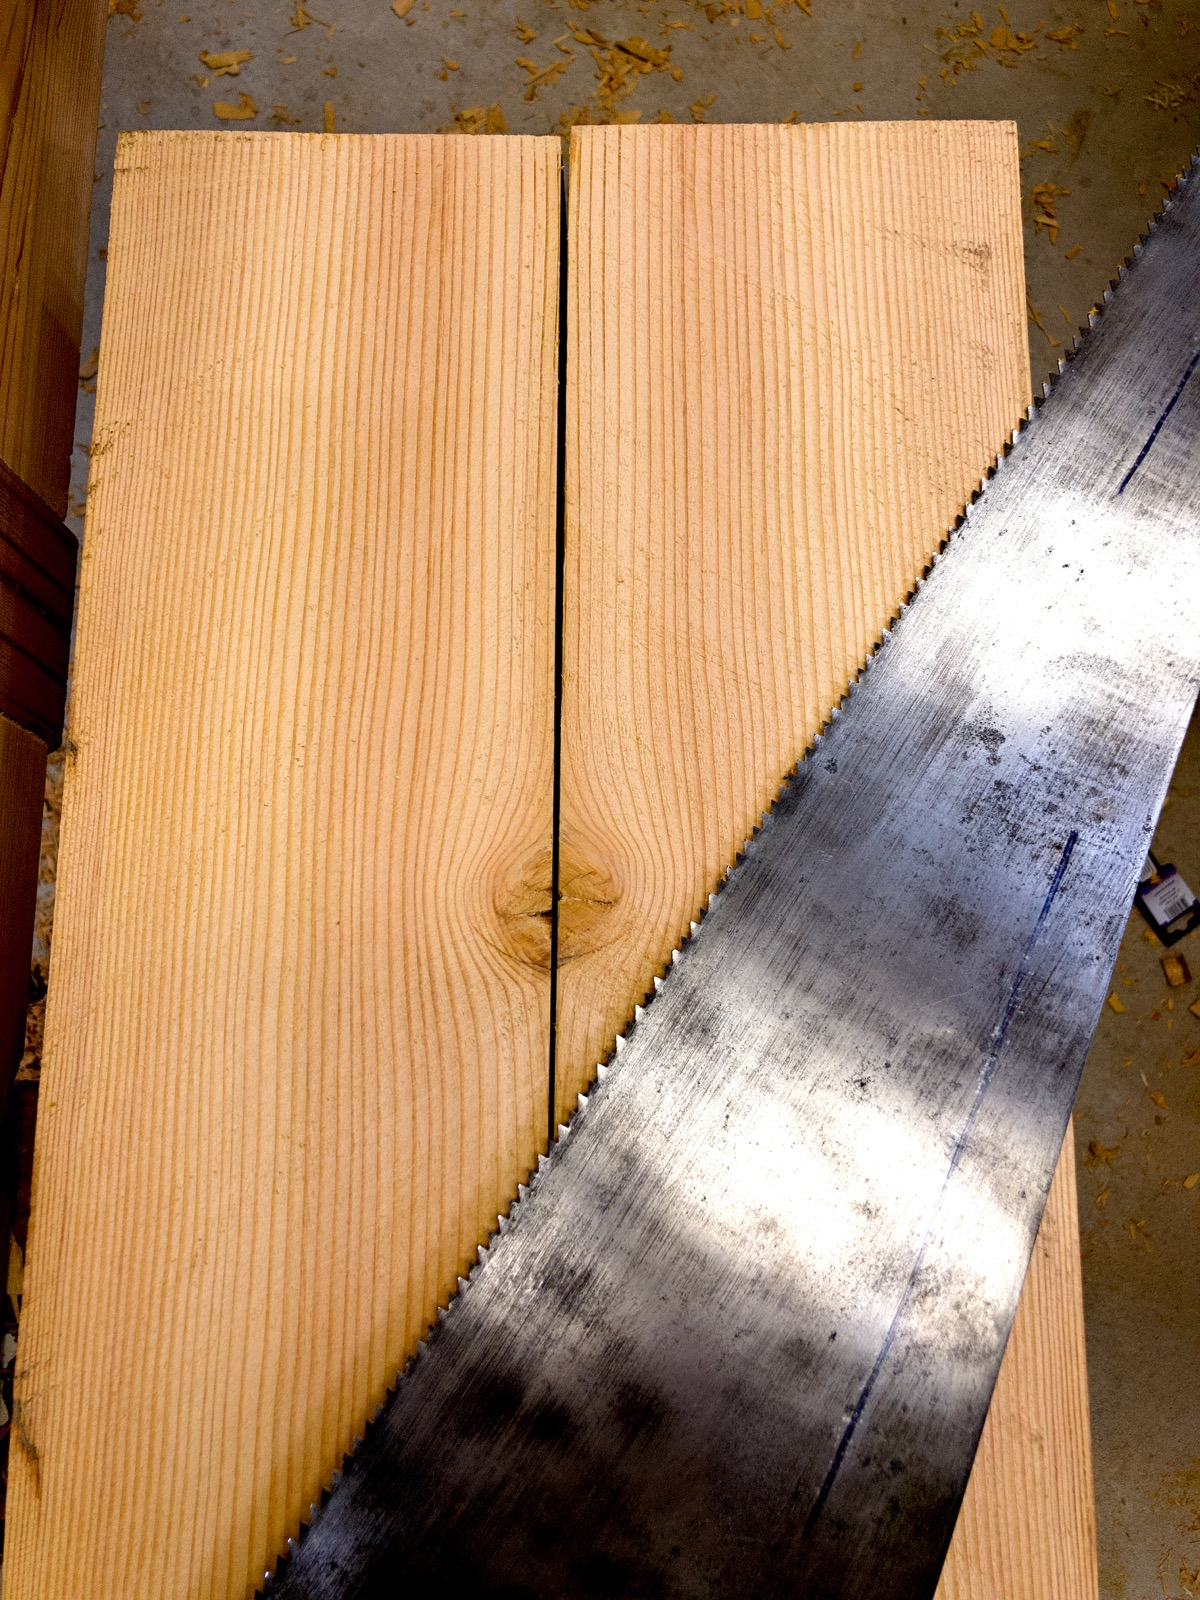 The sawn faces and the saw.